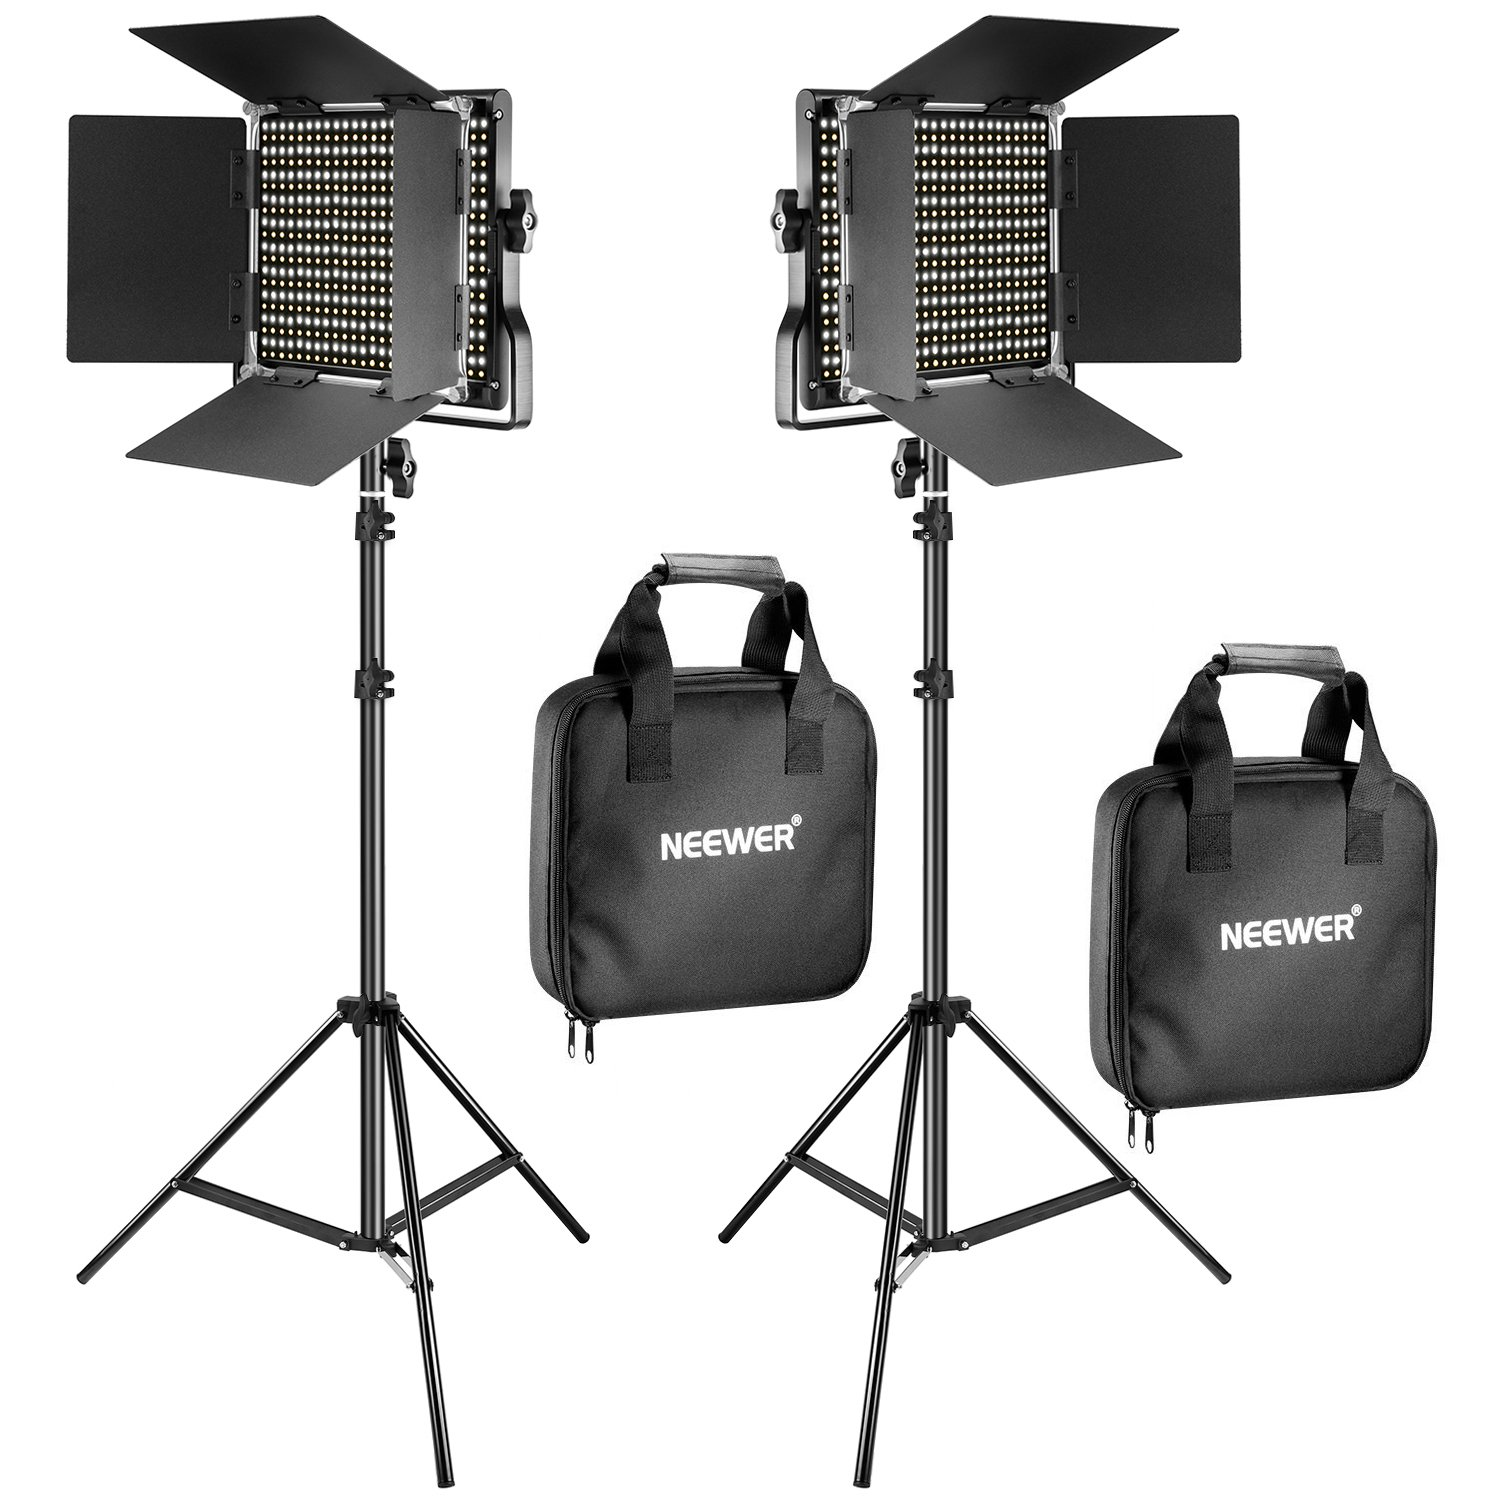 Neewer 2 Pieces Bi-color 660 LED Video Light and Stand Kit Includes:(2)3200-5600K CRI 96+ Dimmable Light with U Bracket and Barndoor and (2)75 inches Light Stand for Studio Photography, Video Shooting by Neewer